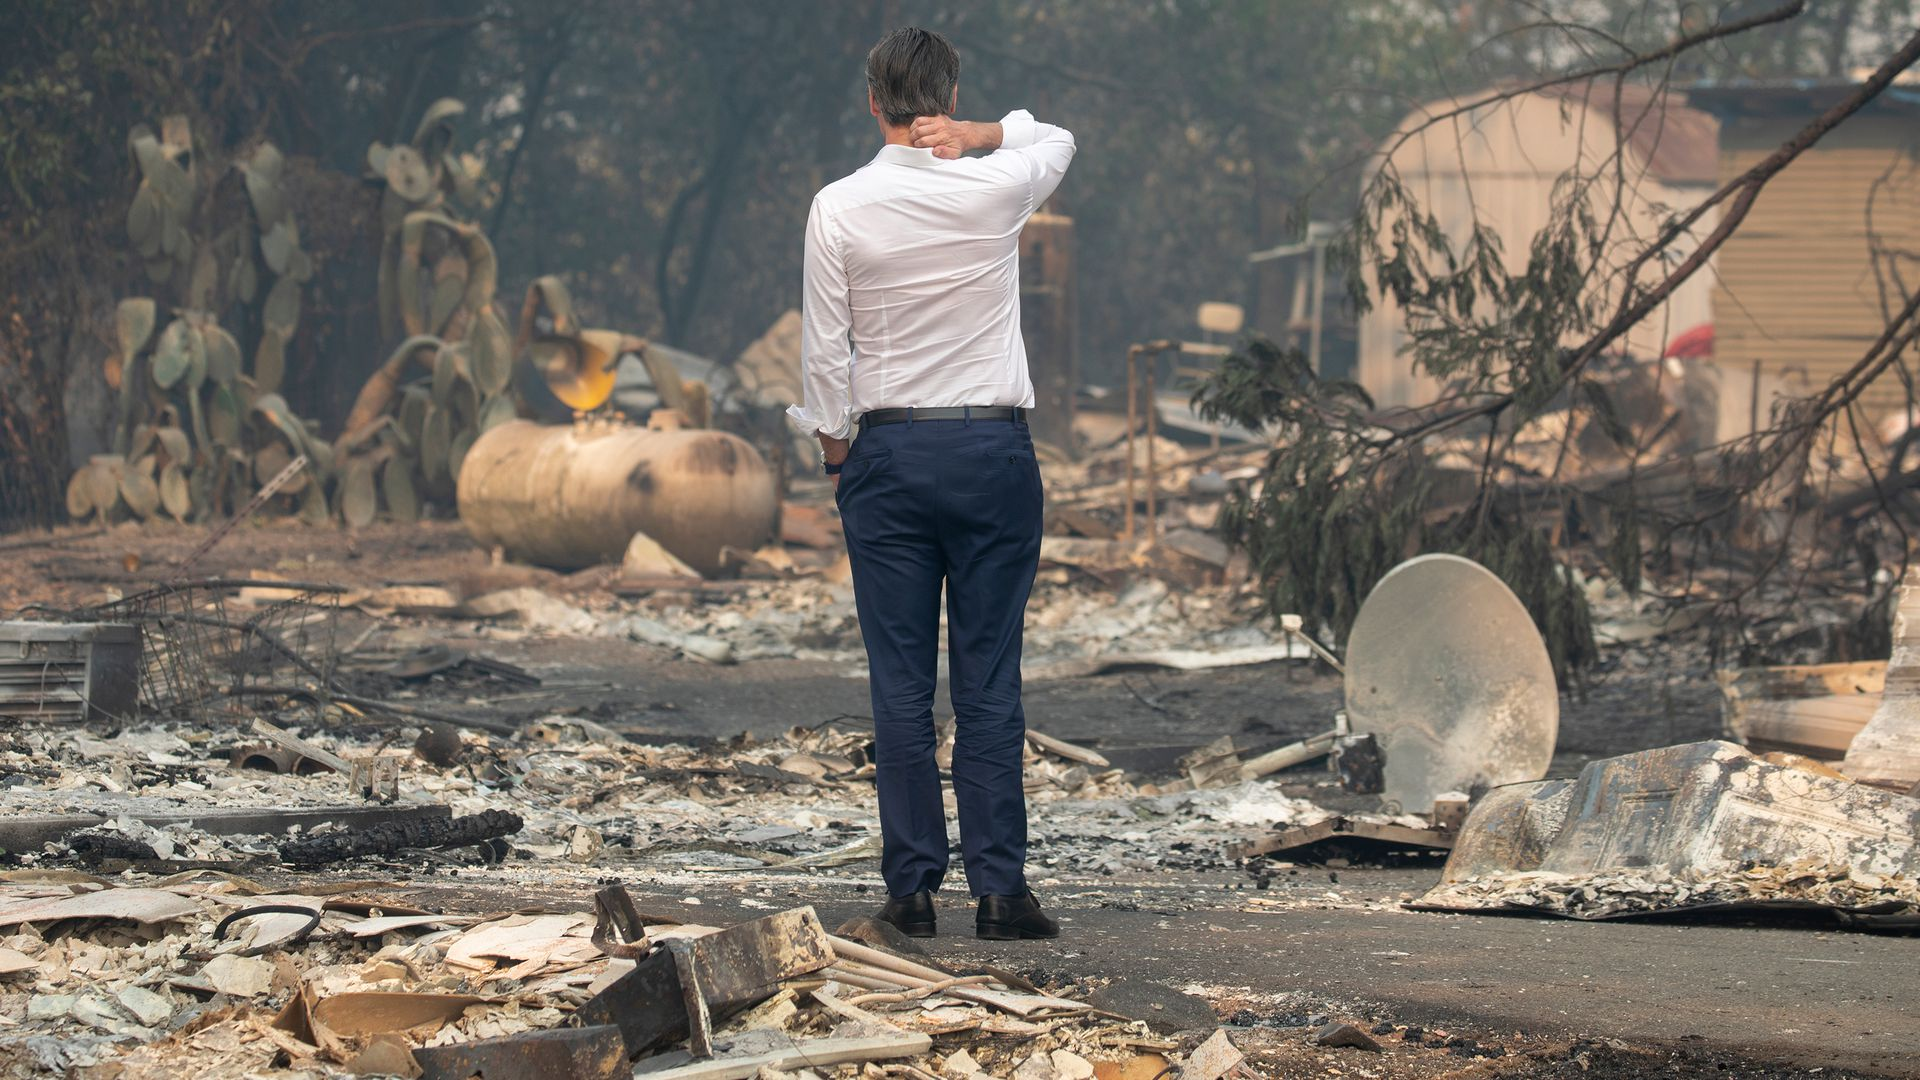 In this image, Gavin Newsom stands in a dress shirt and slacks in the middle of a rubble-filled, burned-out street after a large fire